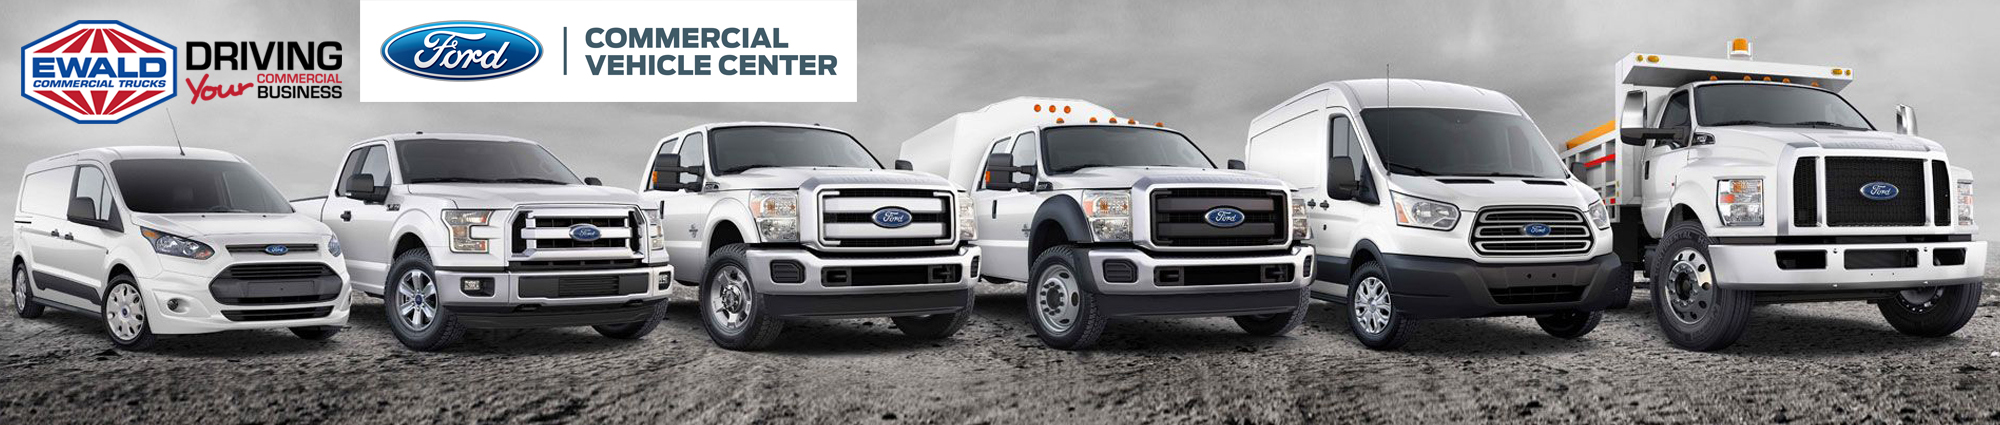 Used Ford 4x4 Trucks For Sale >> Ford 4x4 Trucks For Sale Ewald Truck Center